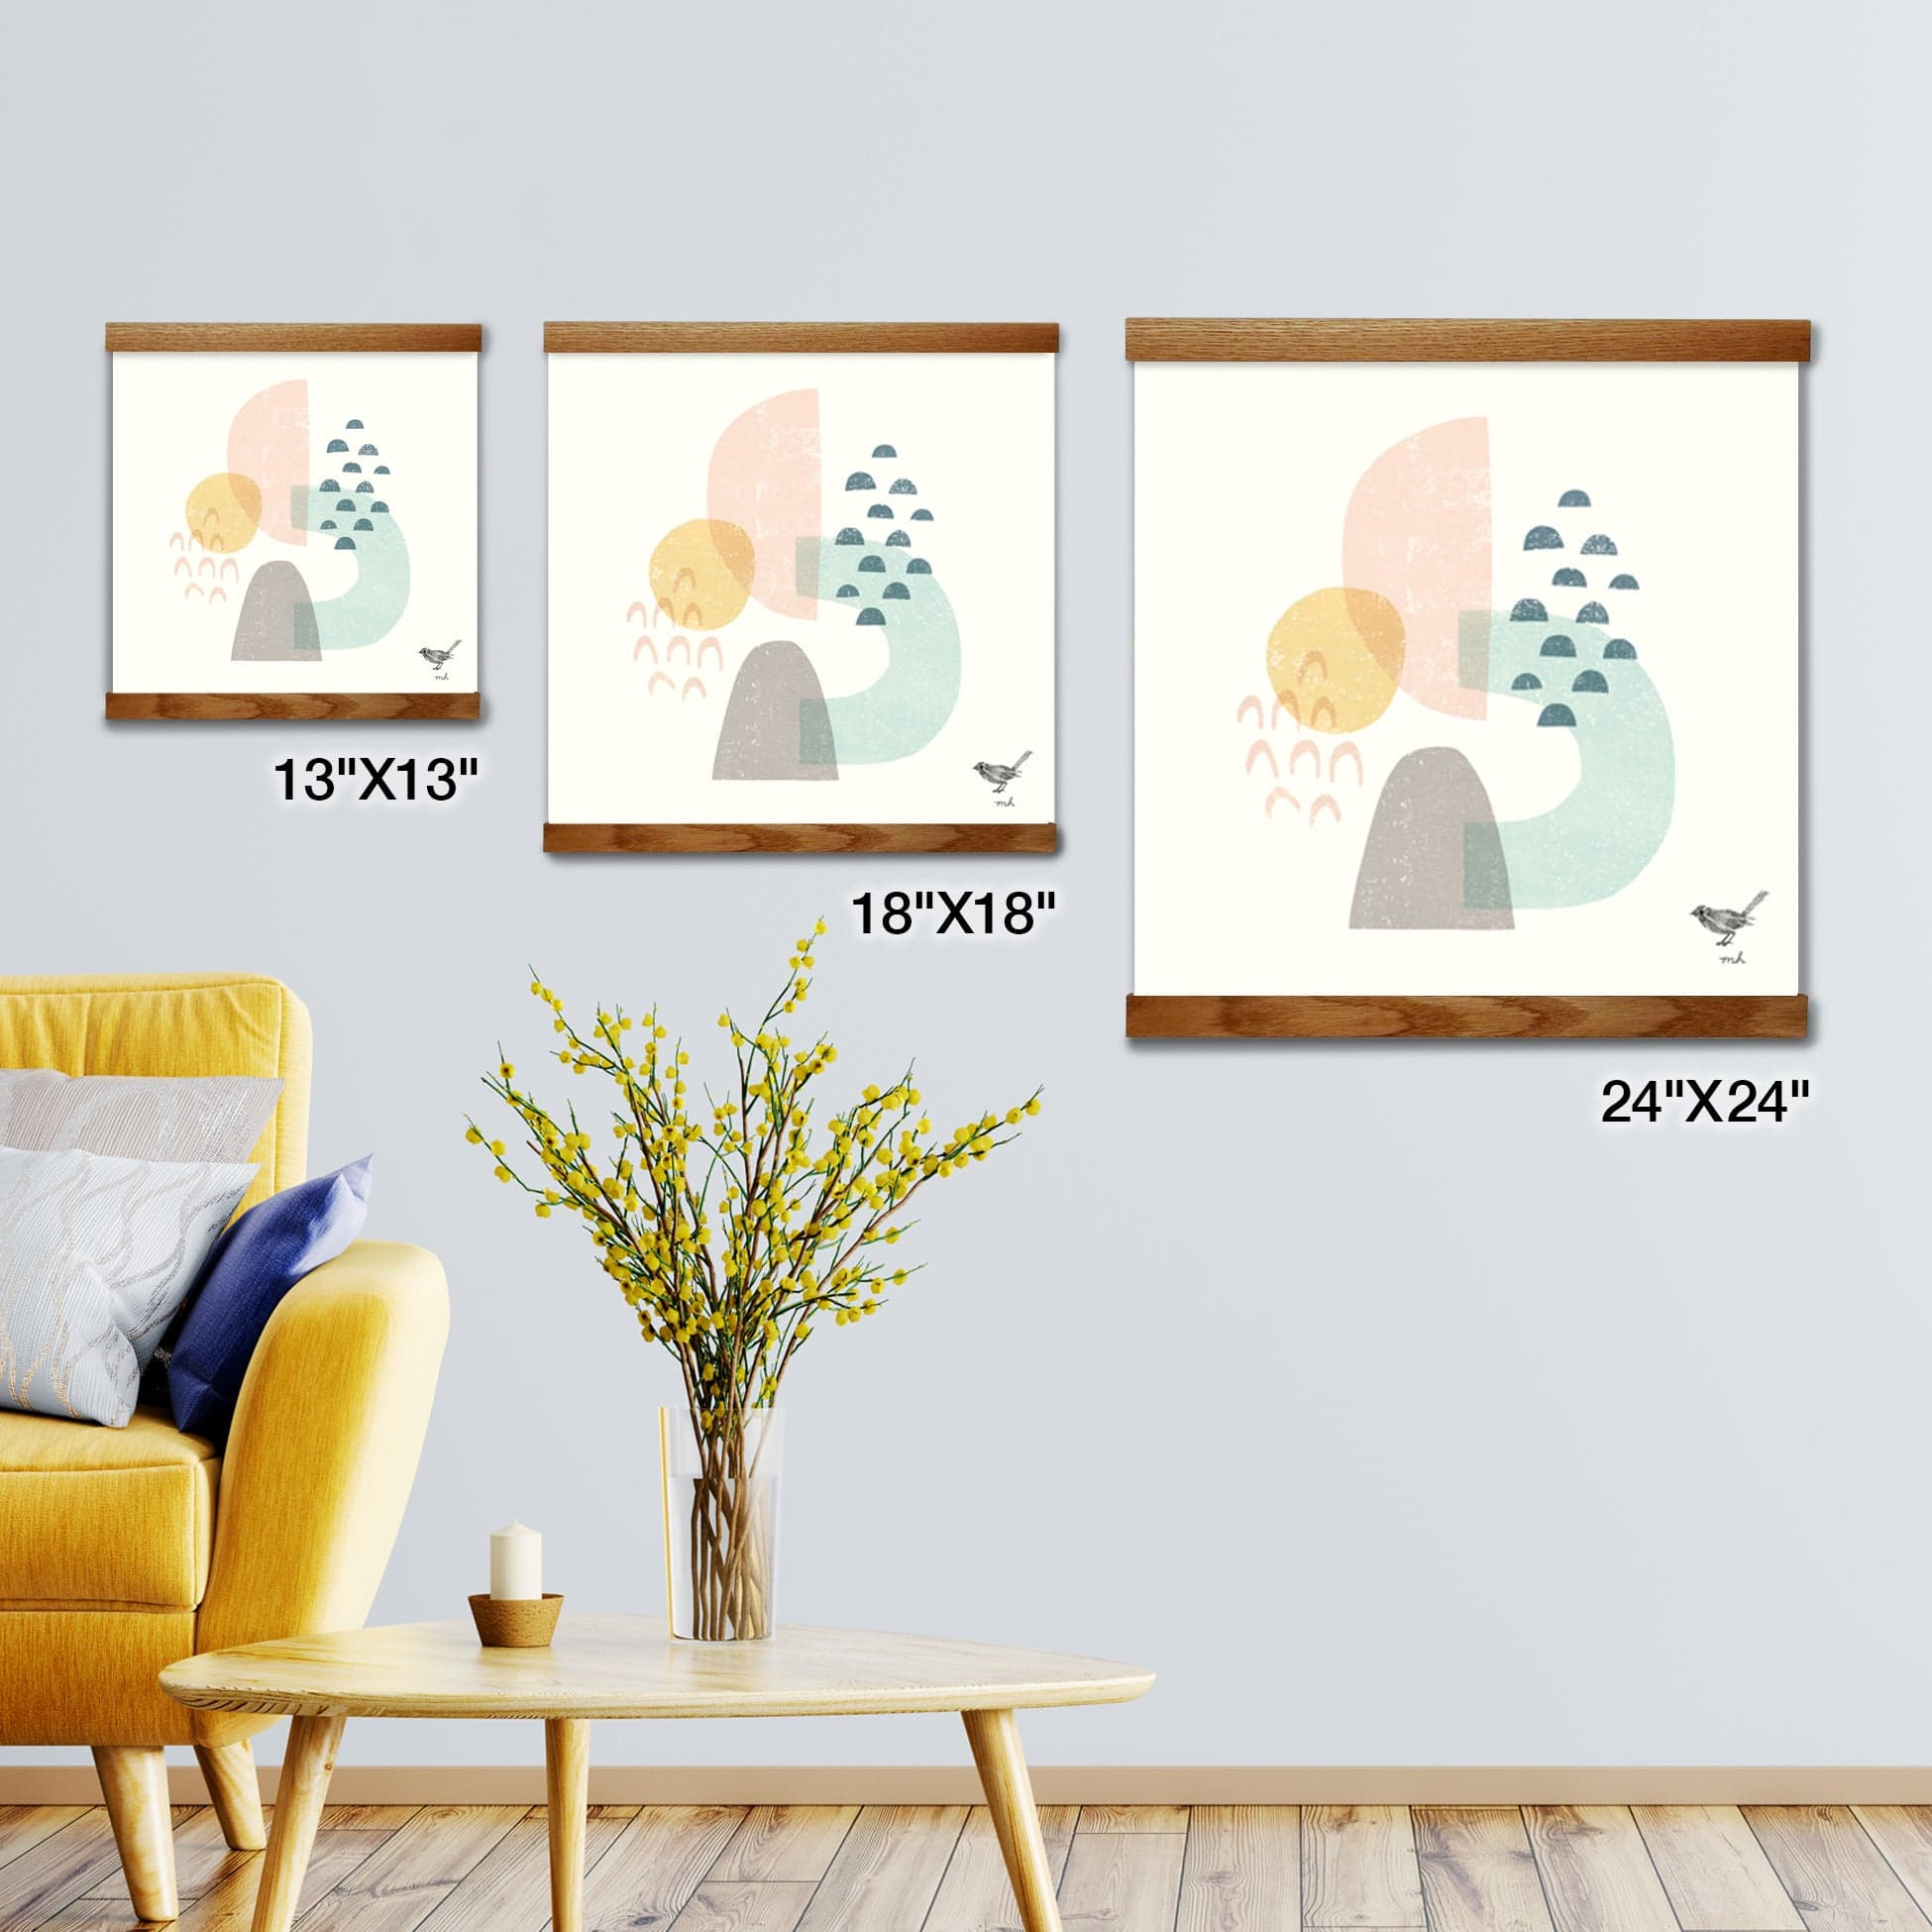 Happy Thoughts I Artwork Wall Decor